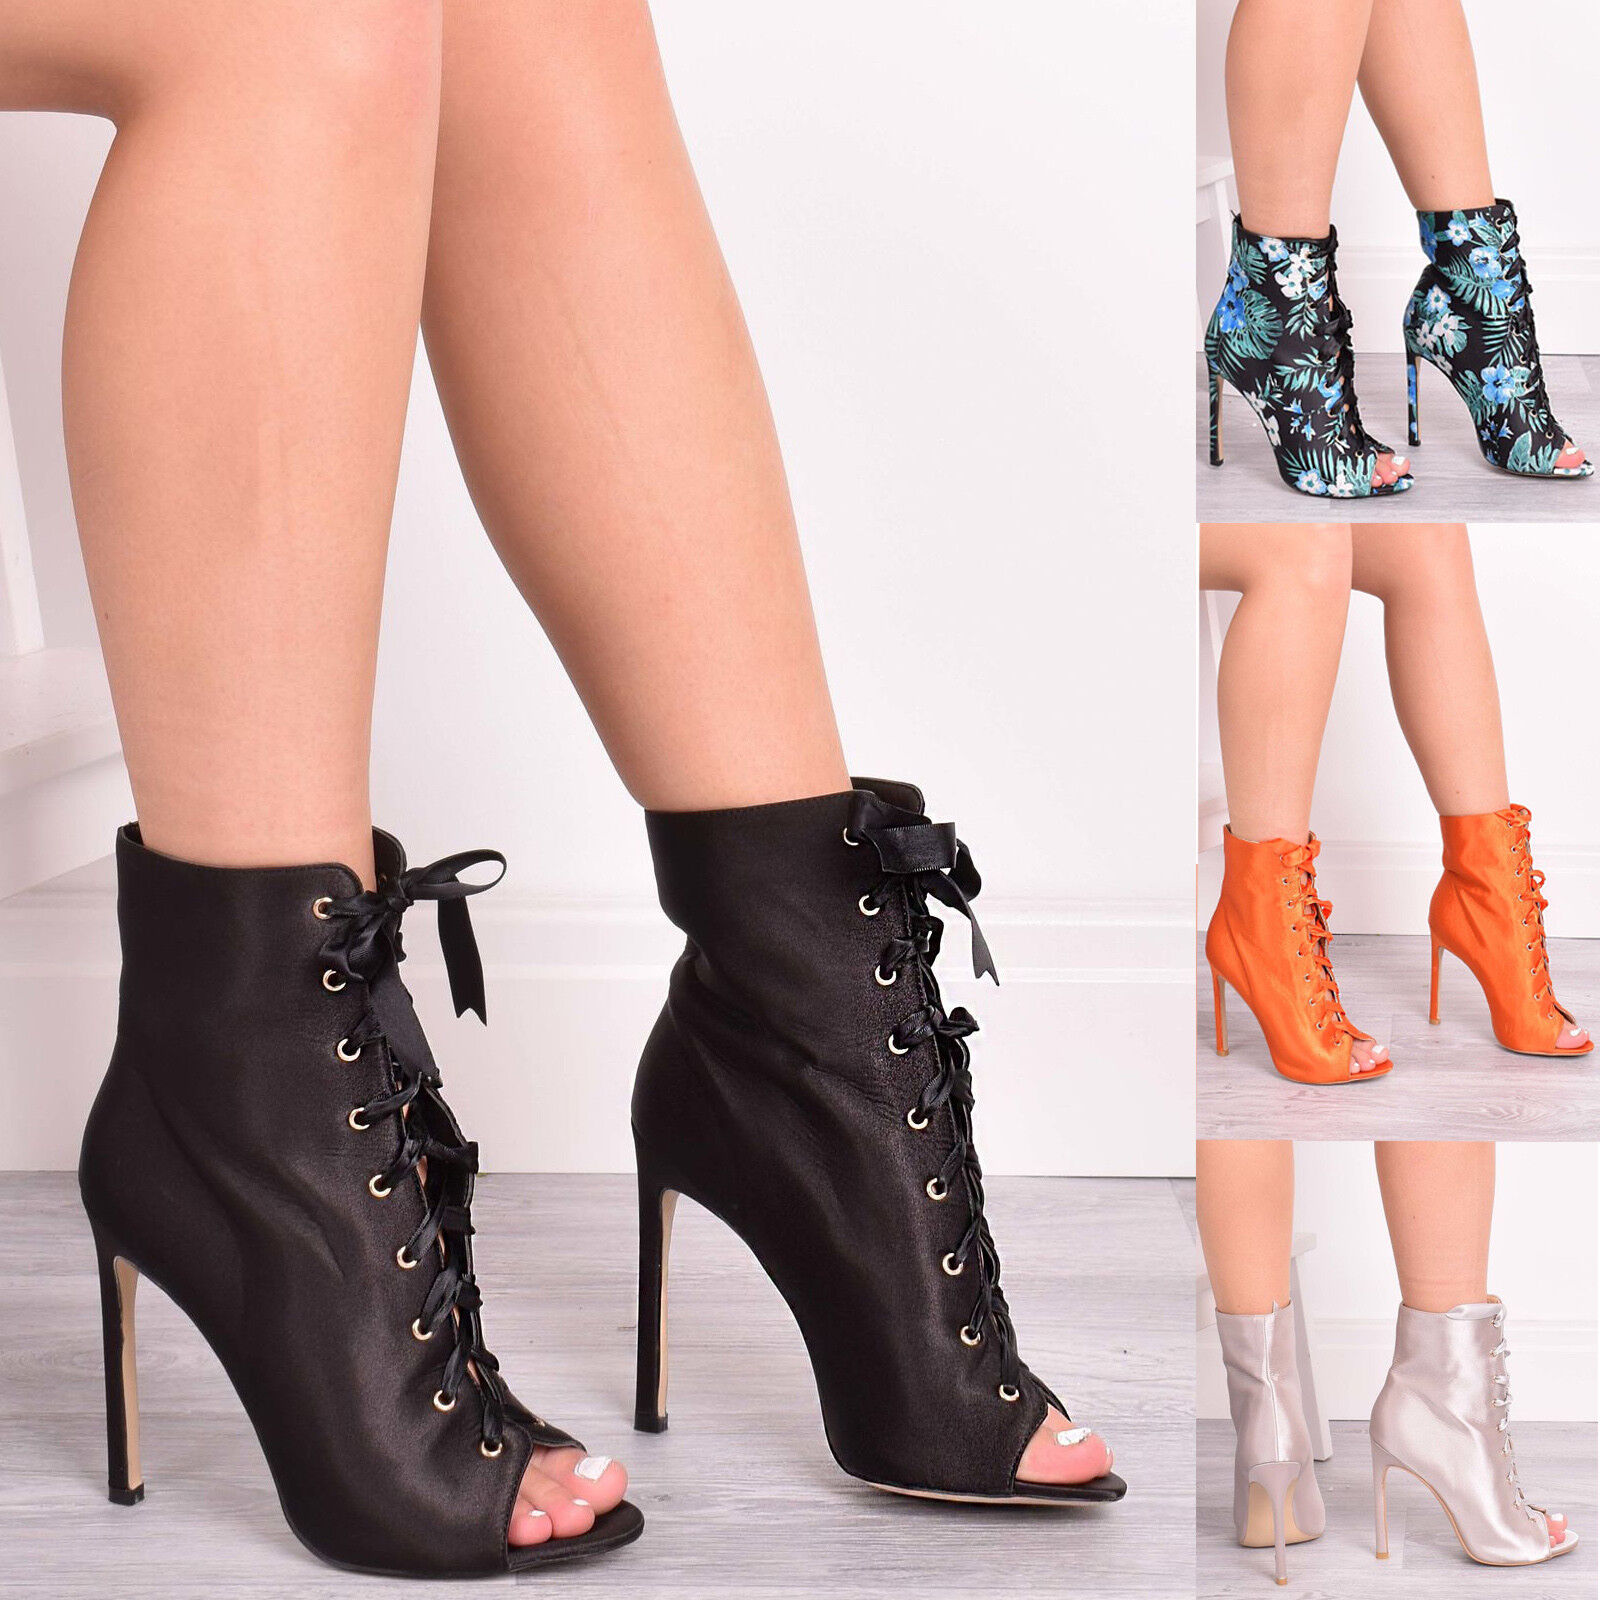 Ladies Womens Ankle Boots High Heel Casual Party Peep Toe Lace up Shoes Size 3-9